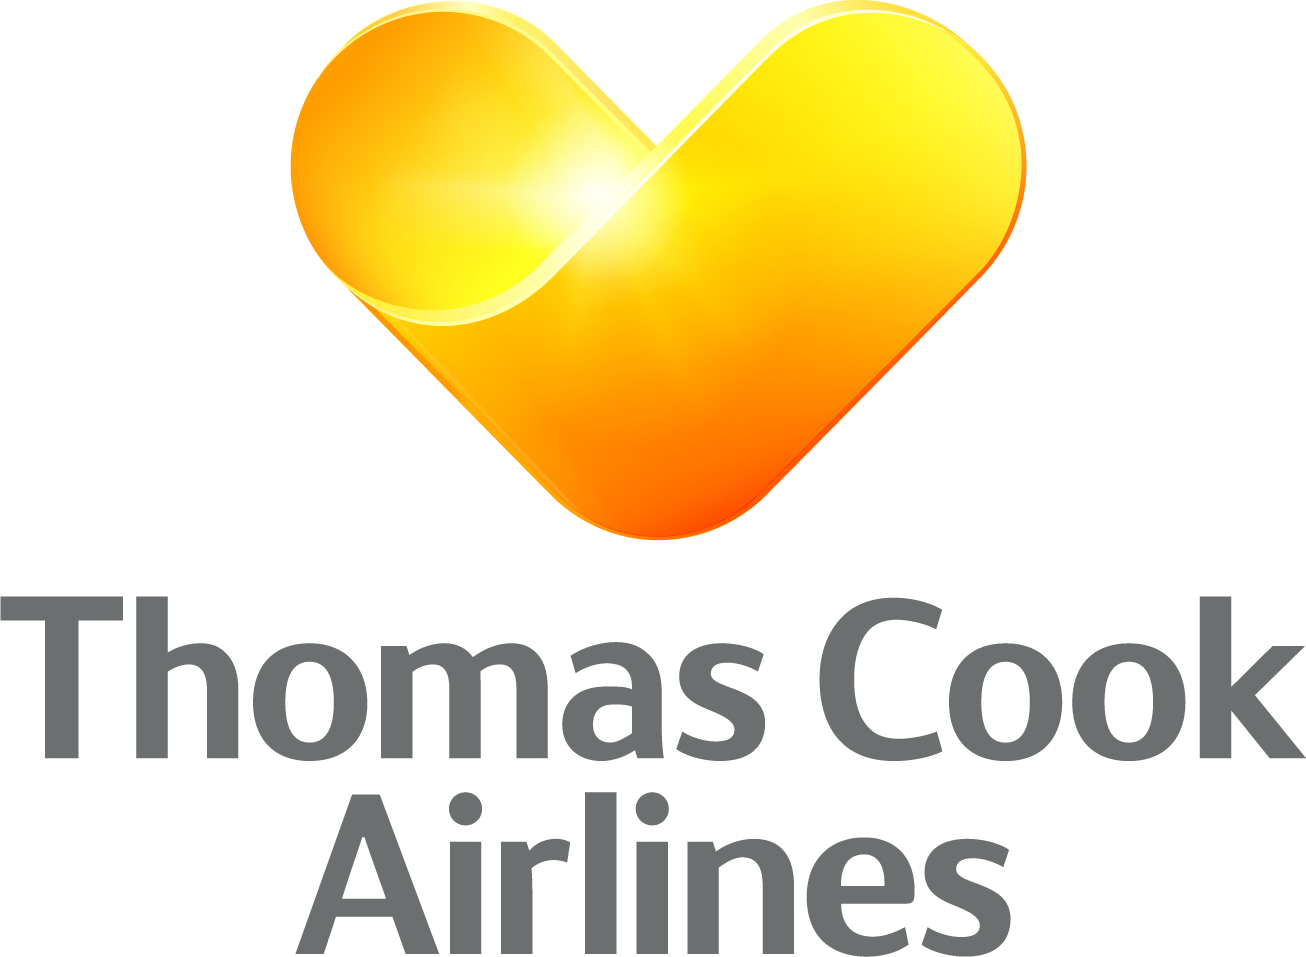 fichierlogo thomas cook airlinespng � wikip233dia